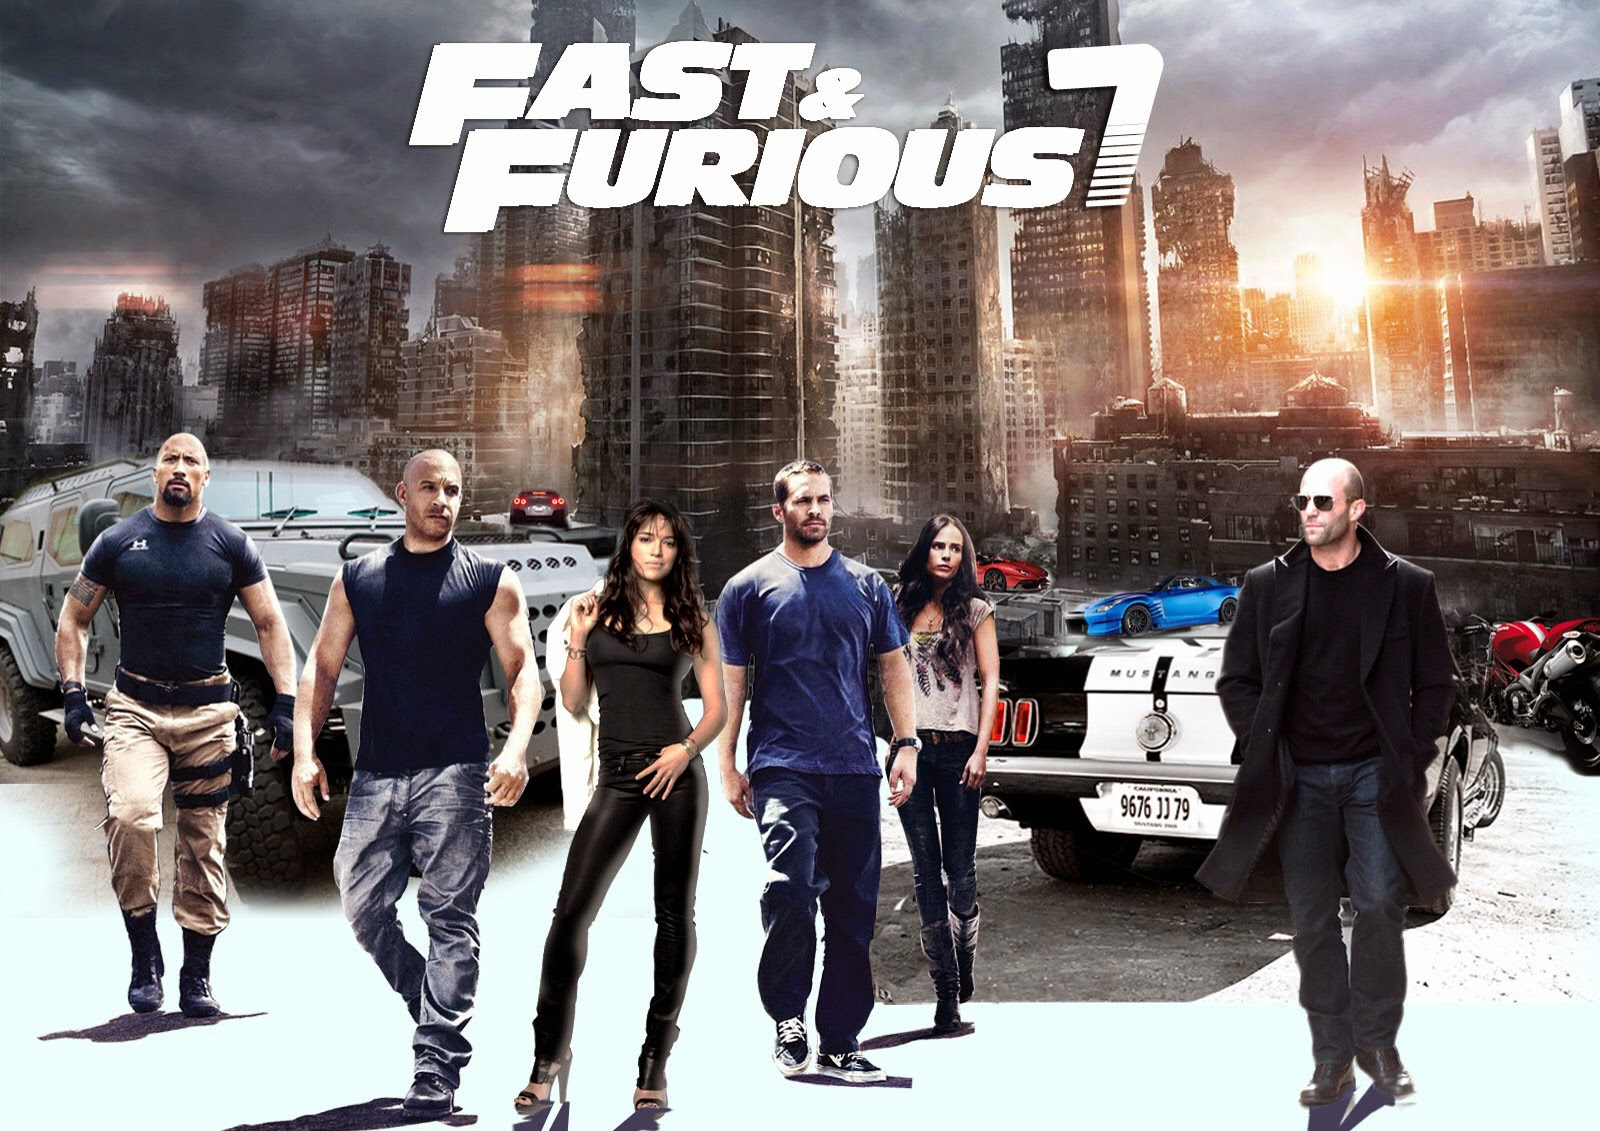 download full movie fast and furious 7 2015 english version cast59. Black Bedroom Furniture Sets. Home Design Ideas